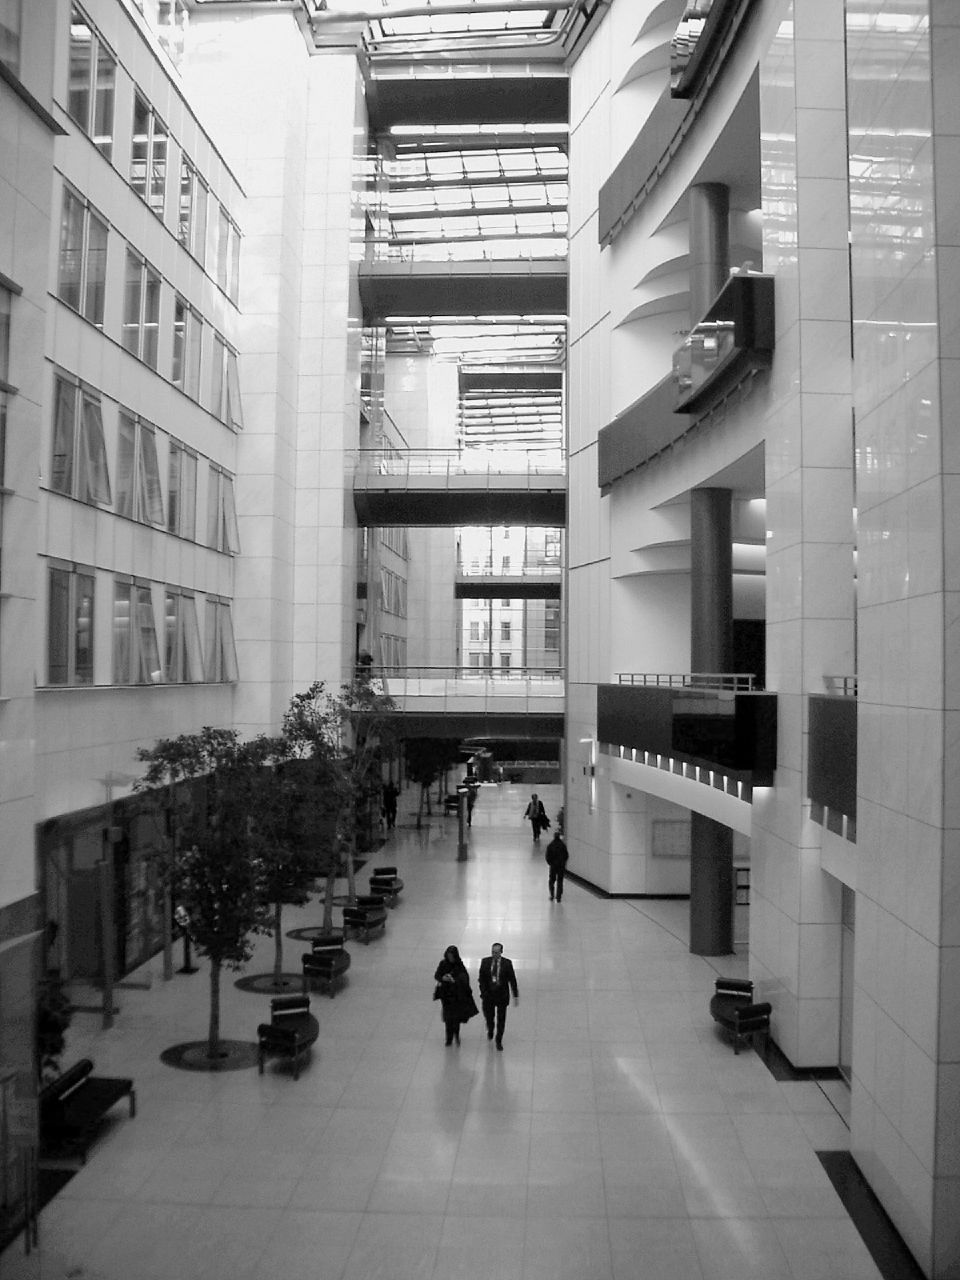 flickr eu inside parliament bw.jpg